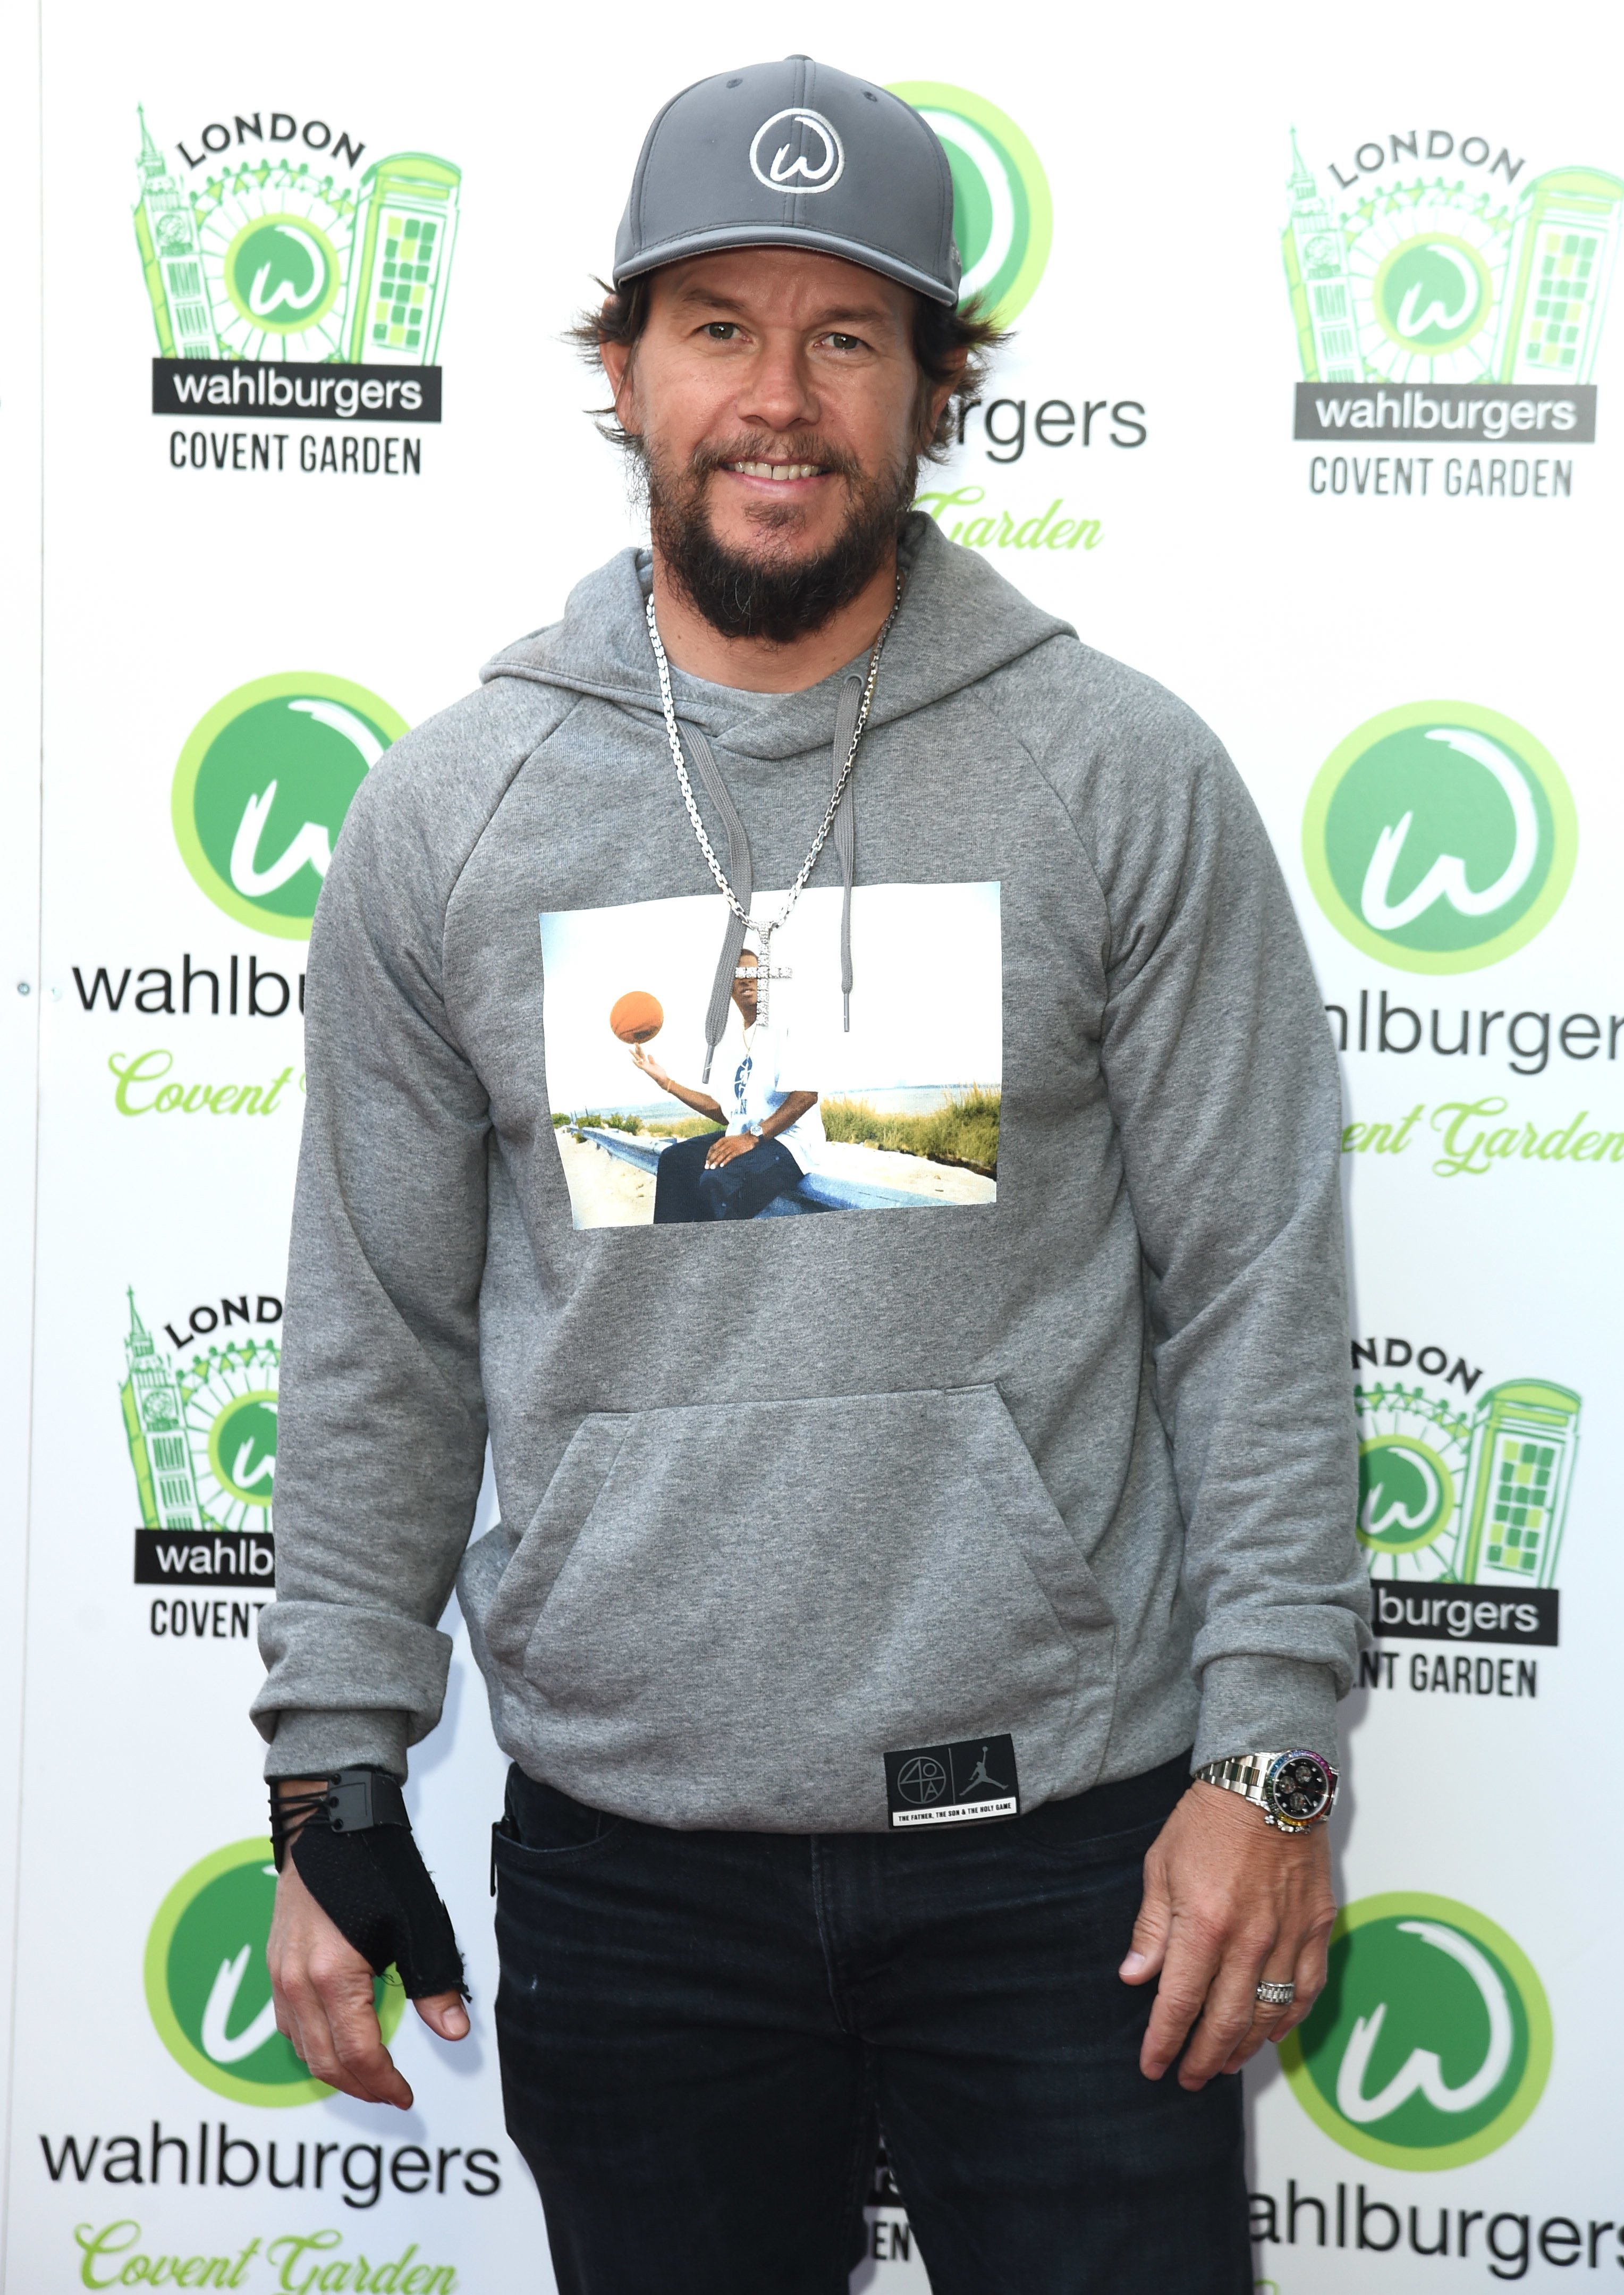 Mark Wahlberg attends the Wahlburgers restaurant launch in Covent Garden in London on May 4, 2019.